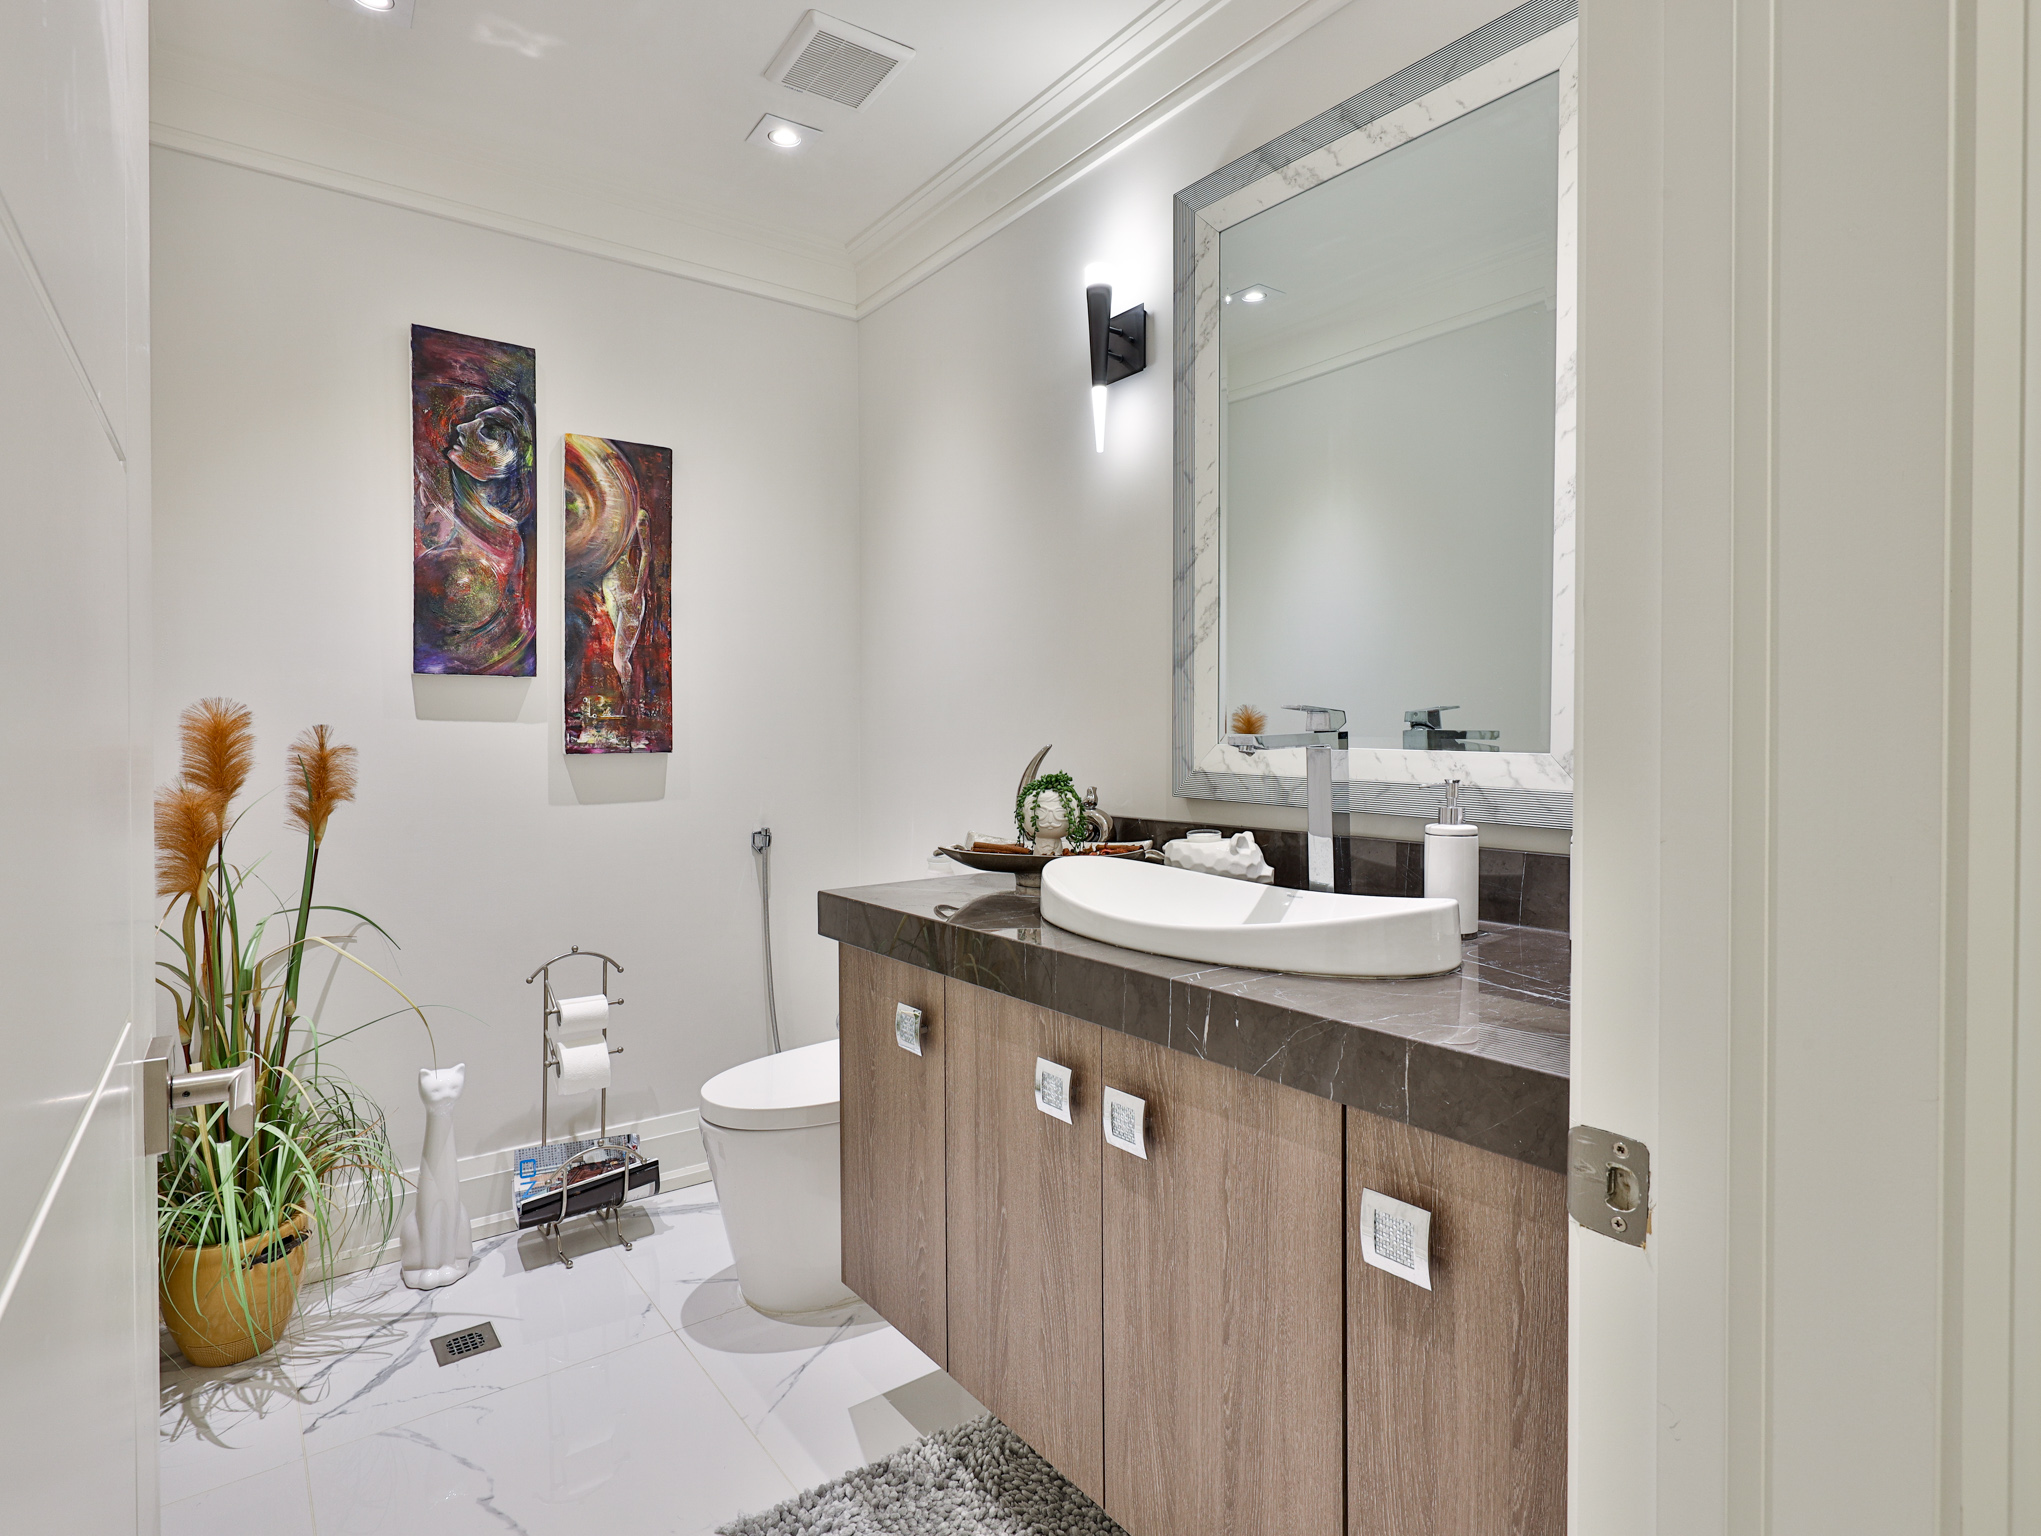 black modern sconce brightens a bathroom inside a luxurious ontario home located at 7 Albion Close